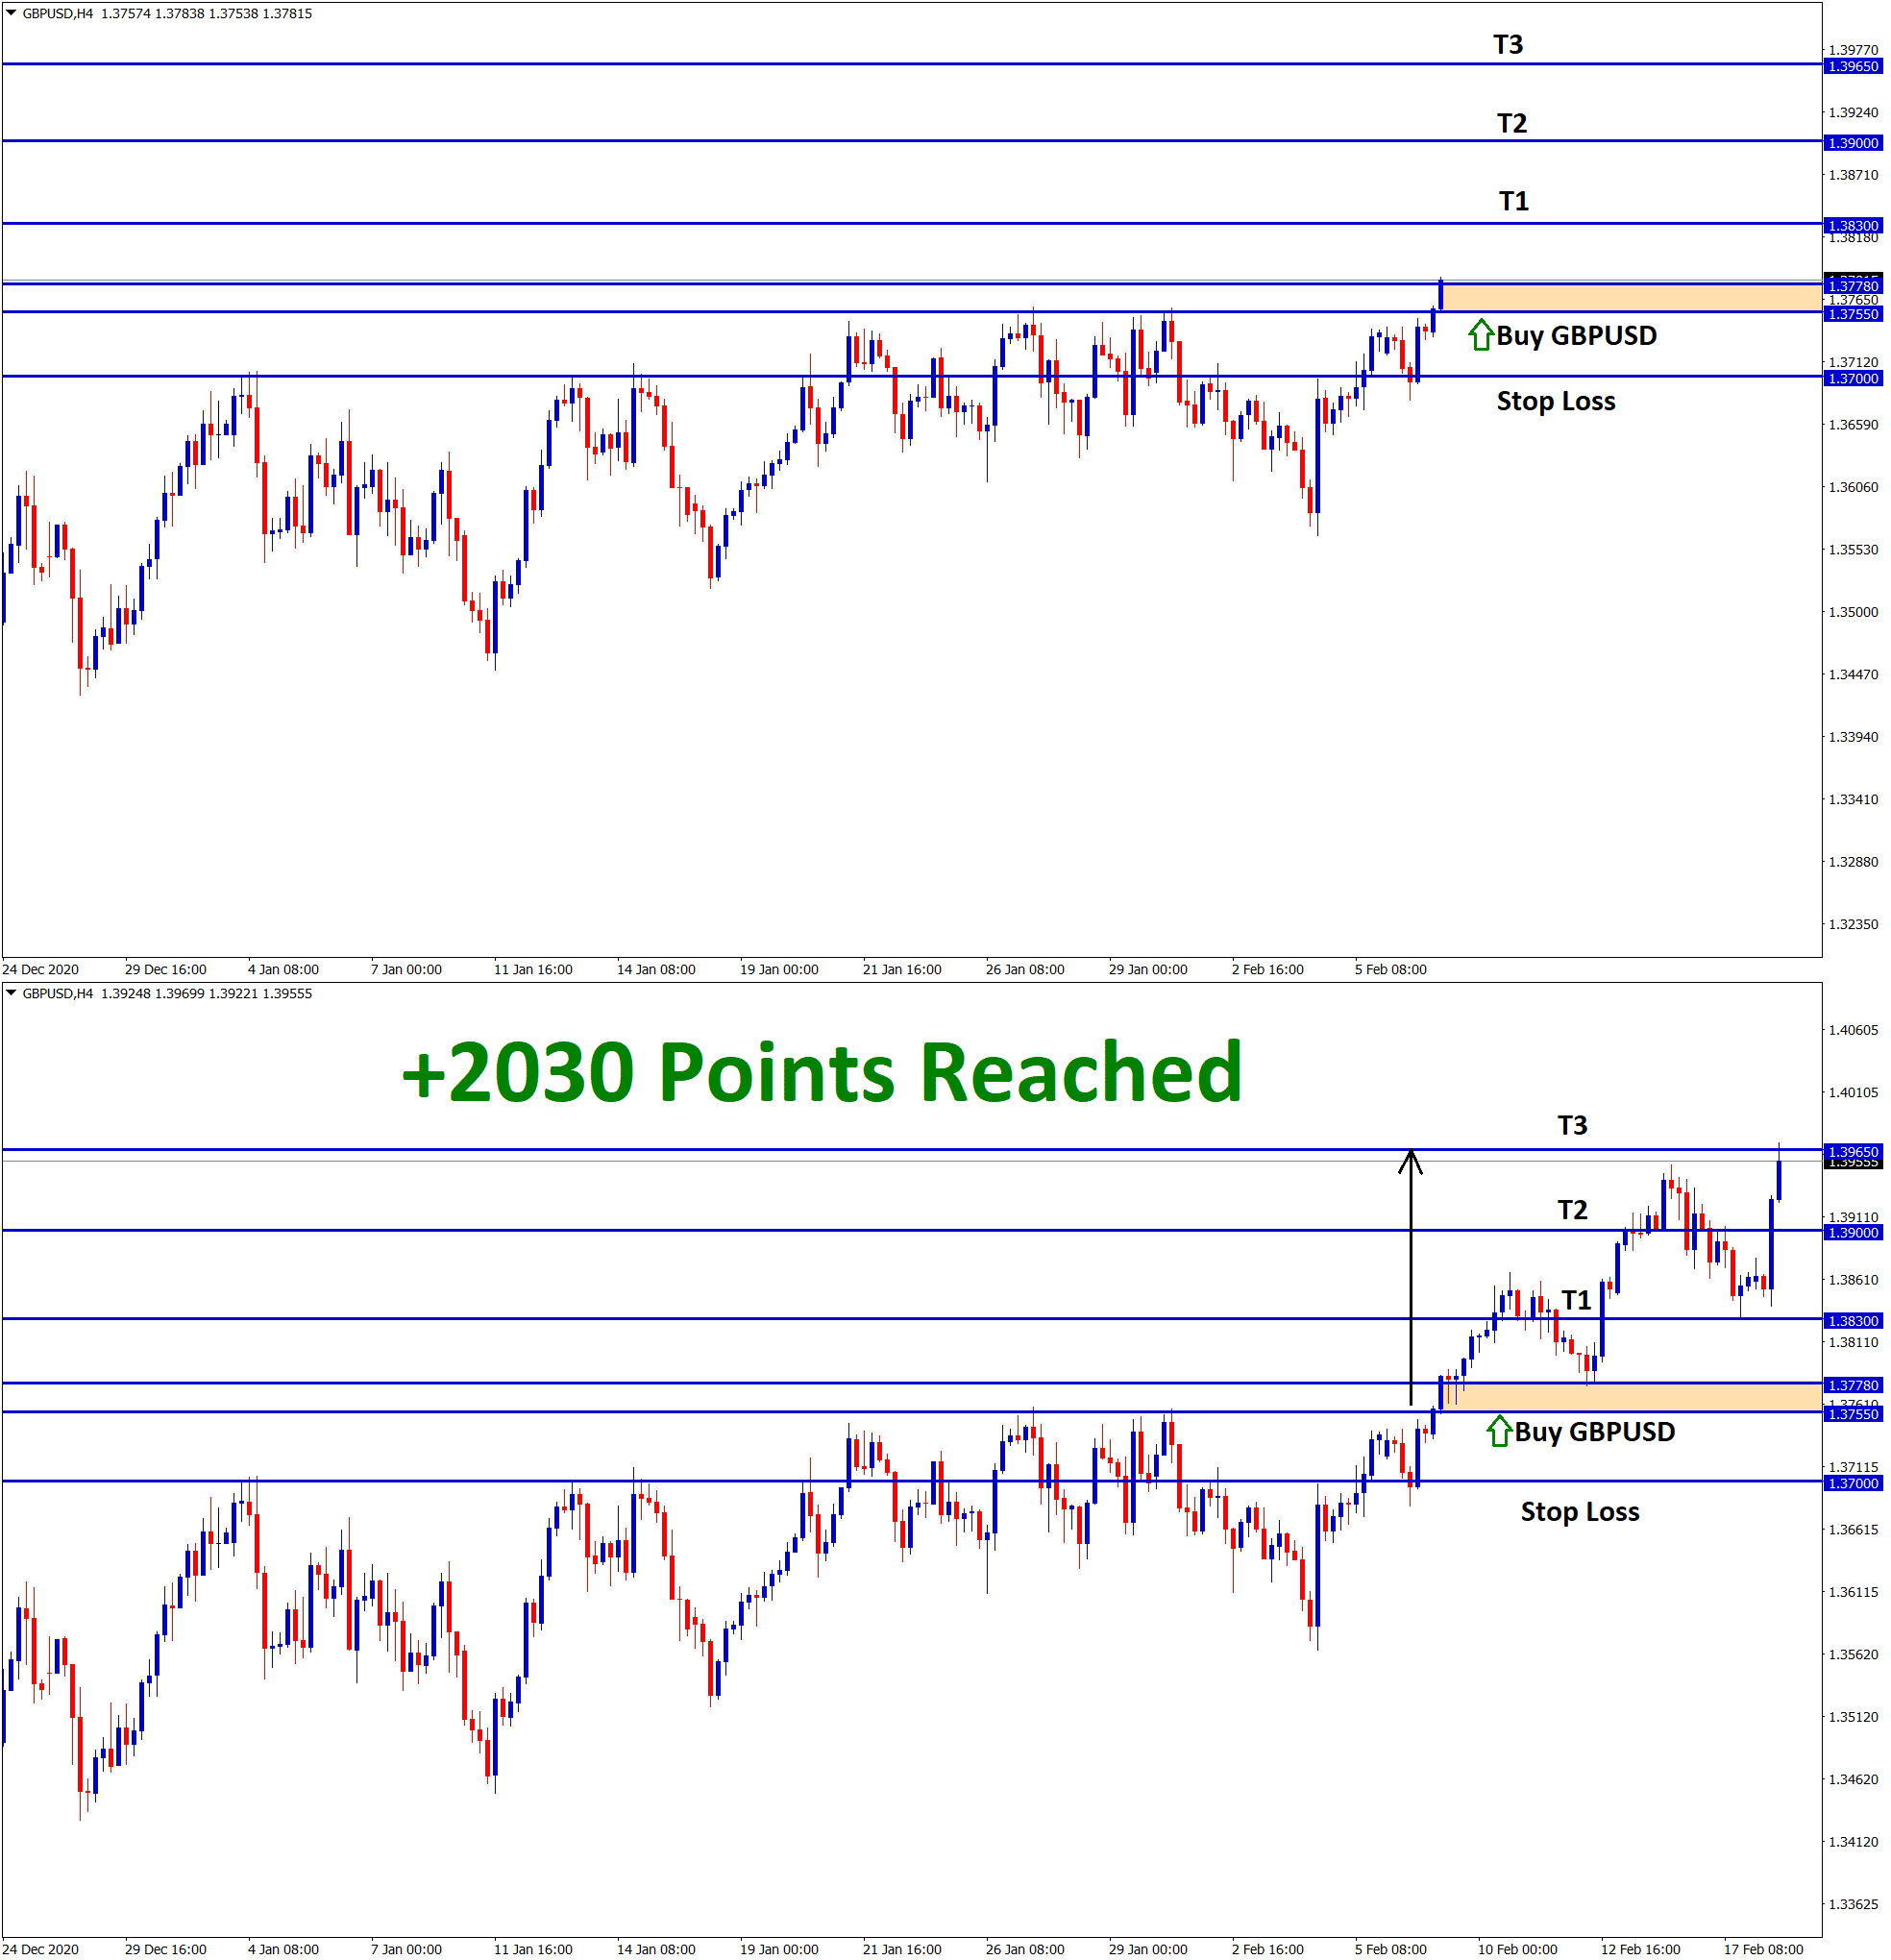 2030 Points Reched in GBPUSD